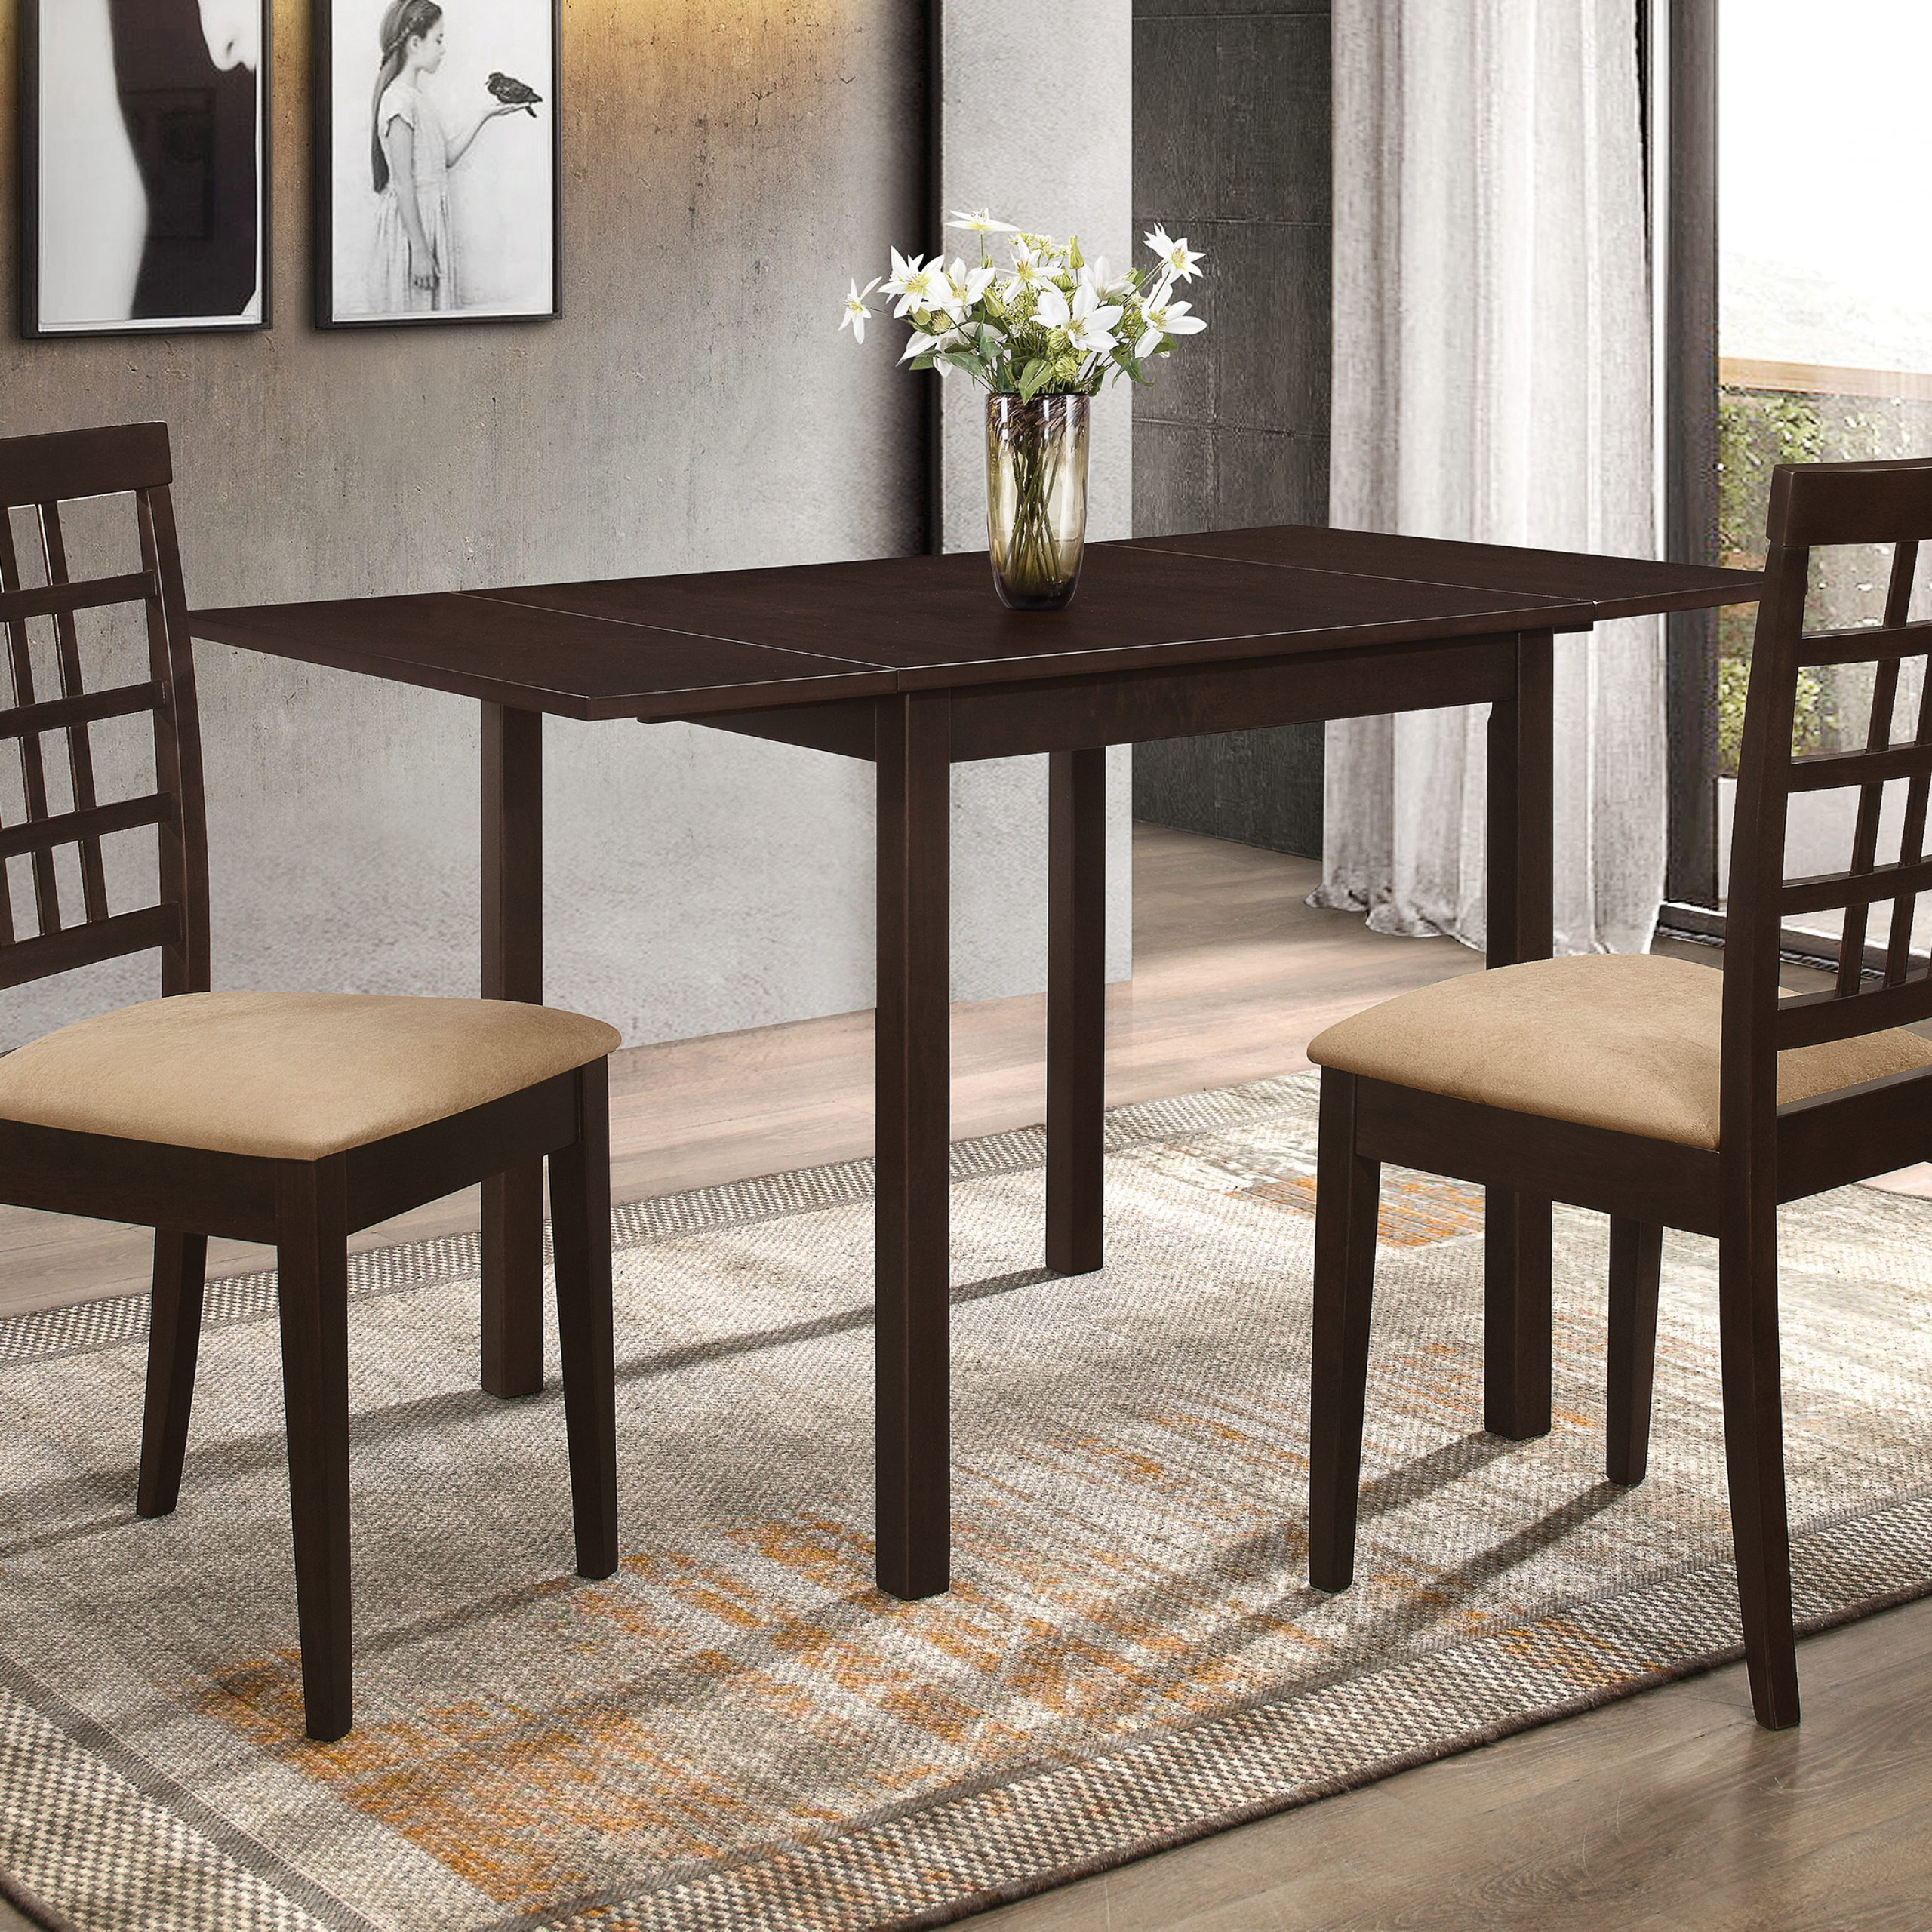 Cappuccino Finish Wood Classic Casual Dining Tables Regarding Current Kelso Rectangular Dining Table With Drop Leaf Cappuccino (View 10 of 30)